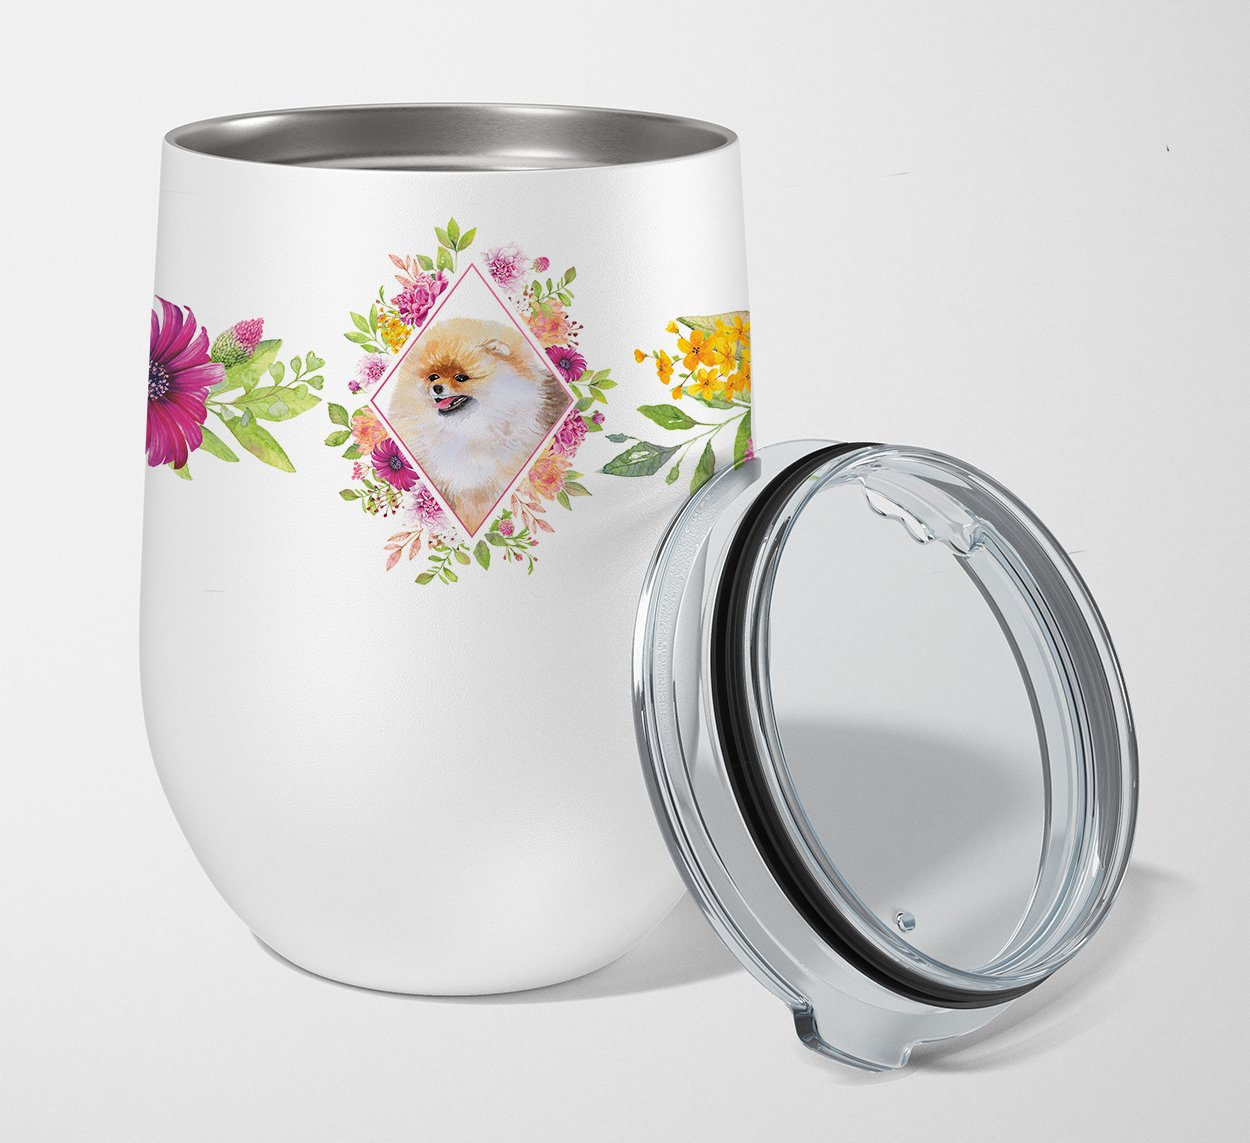 Pomeranian #2 Pink Flowers Stainless Steel 12 oz Stemless Wine Glass CK4170TBL12 by Caroline's Treasures